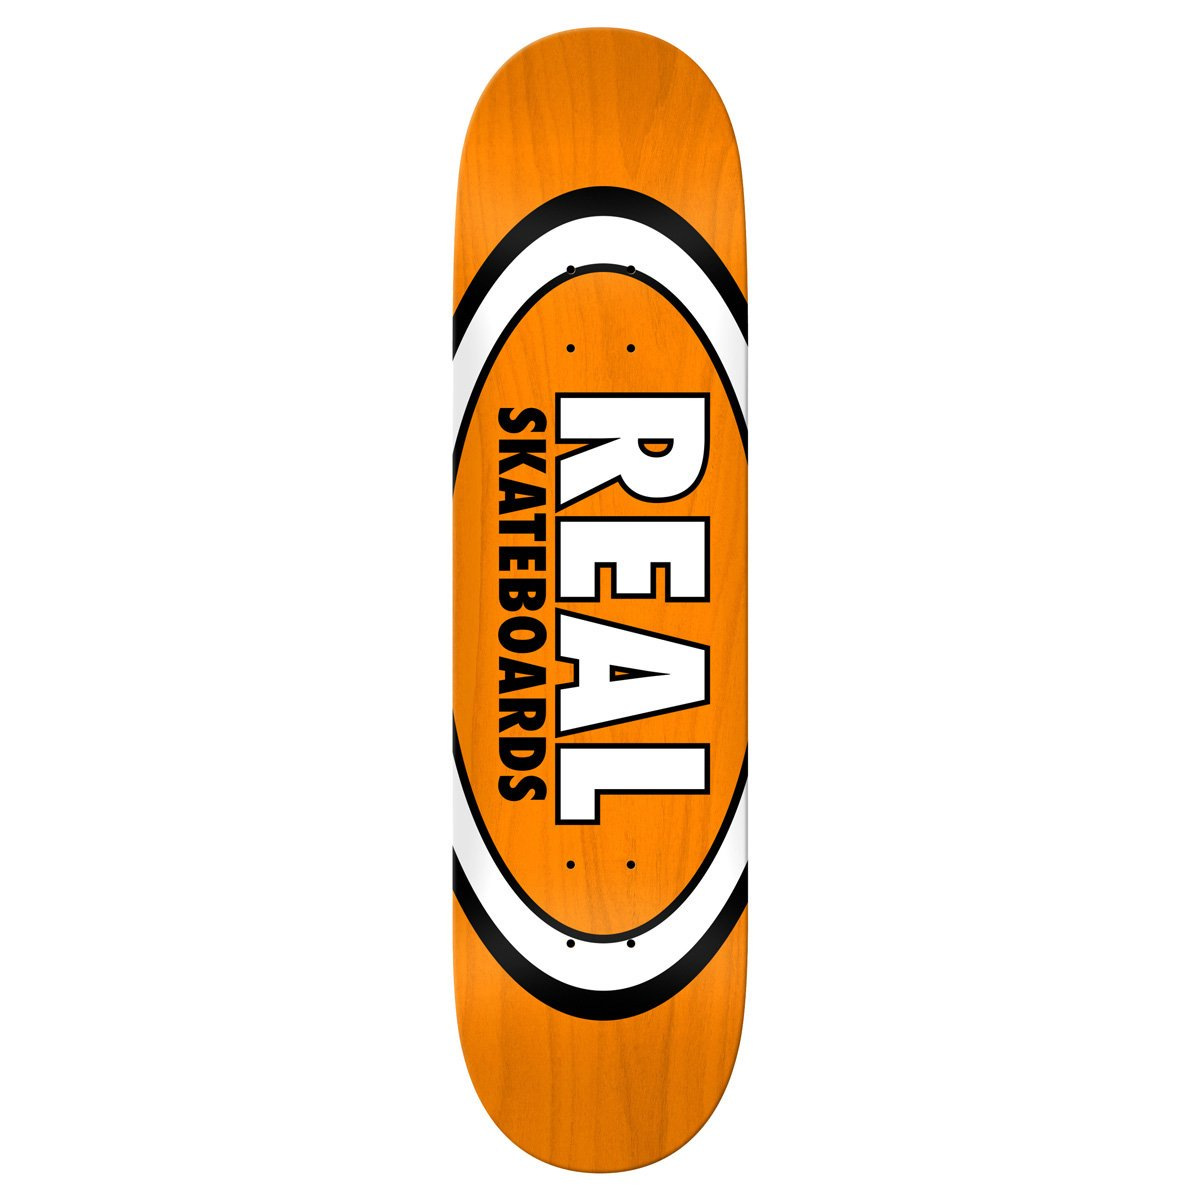 Real Overspray Deck Product Photo #1